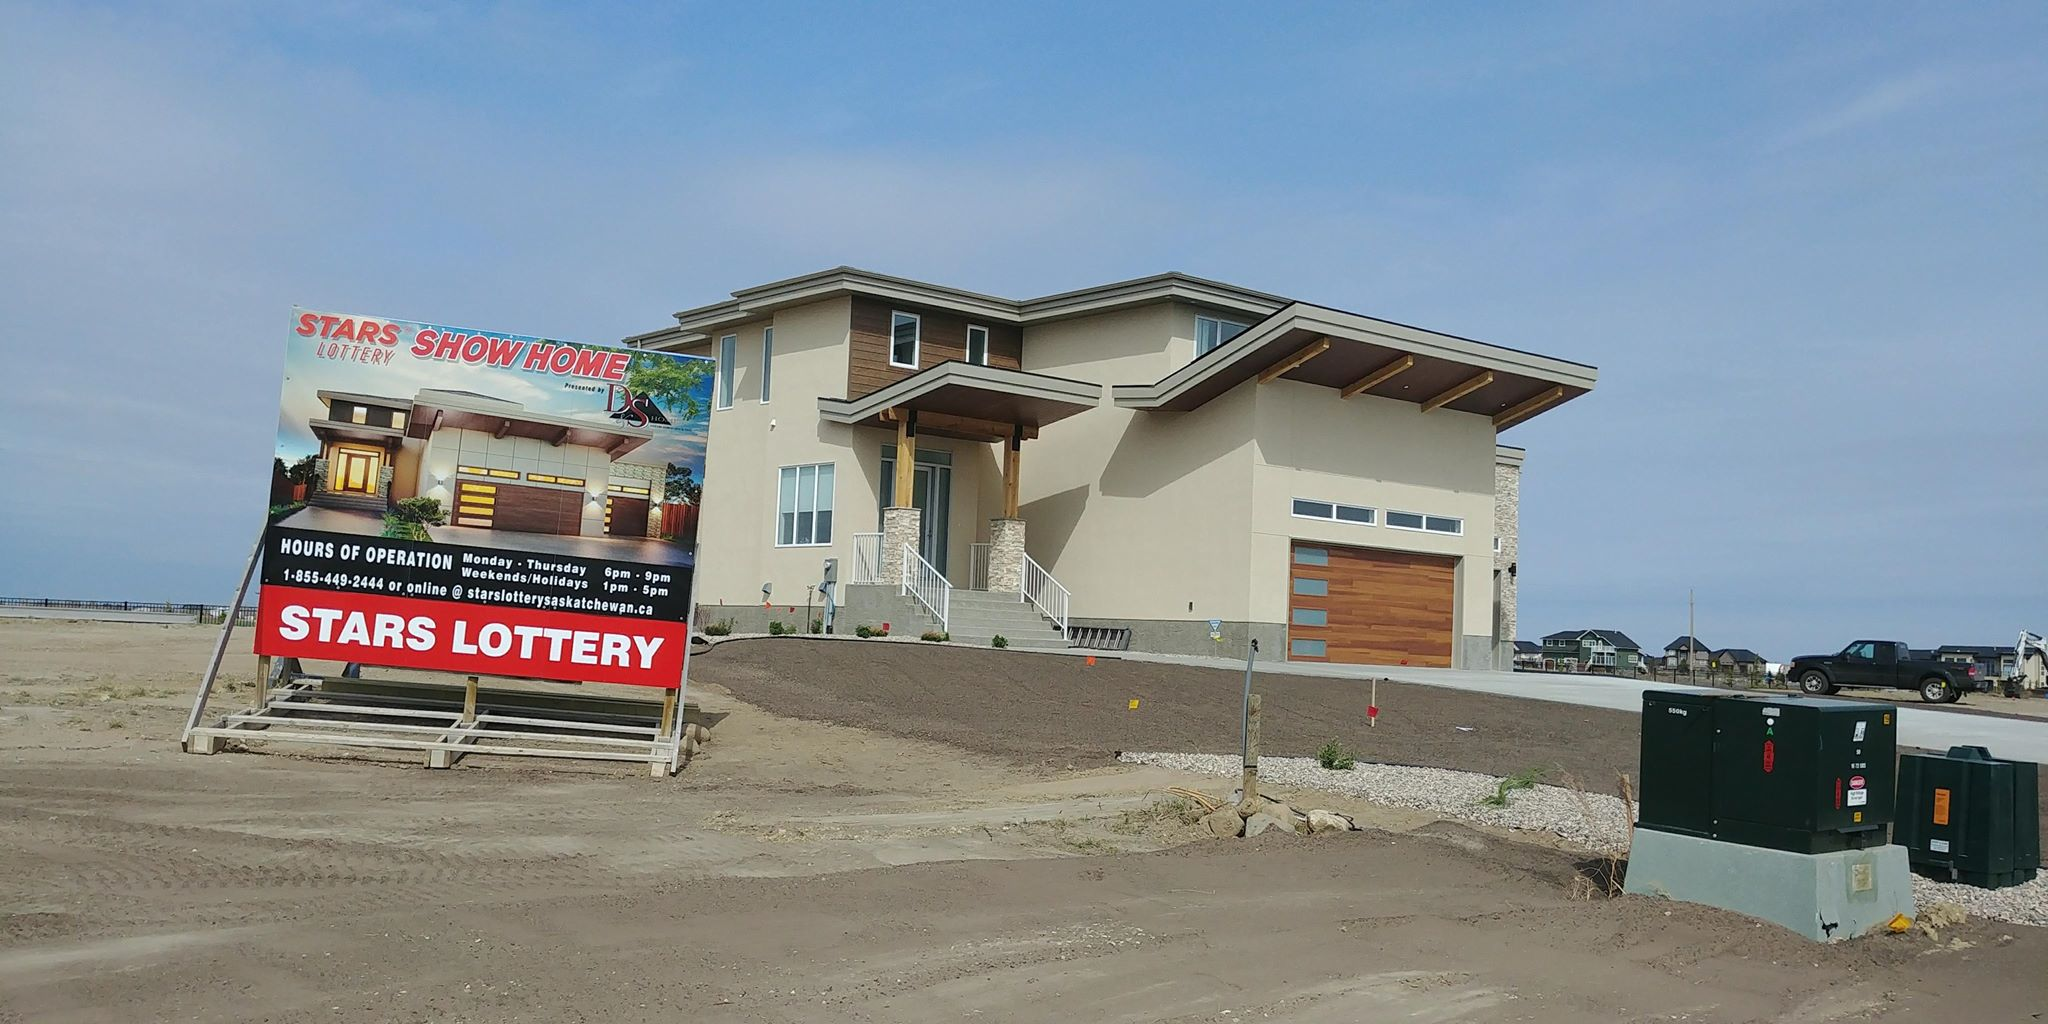 STARS home lottery lifts off in Pilot Butte